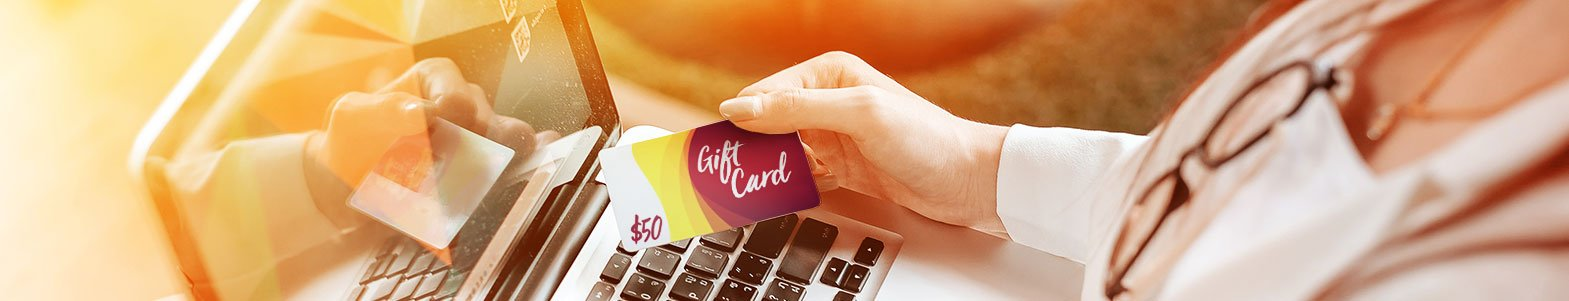 Anonymous-At-Computer-With-Gift-Card.jpg